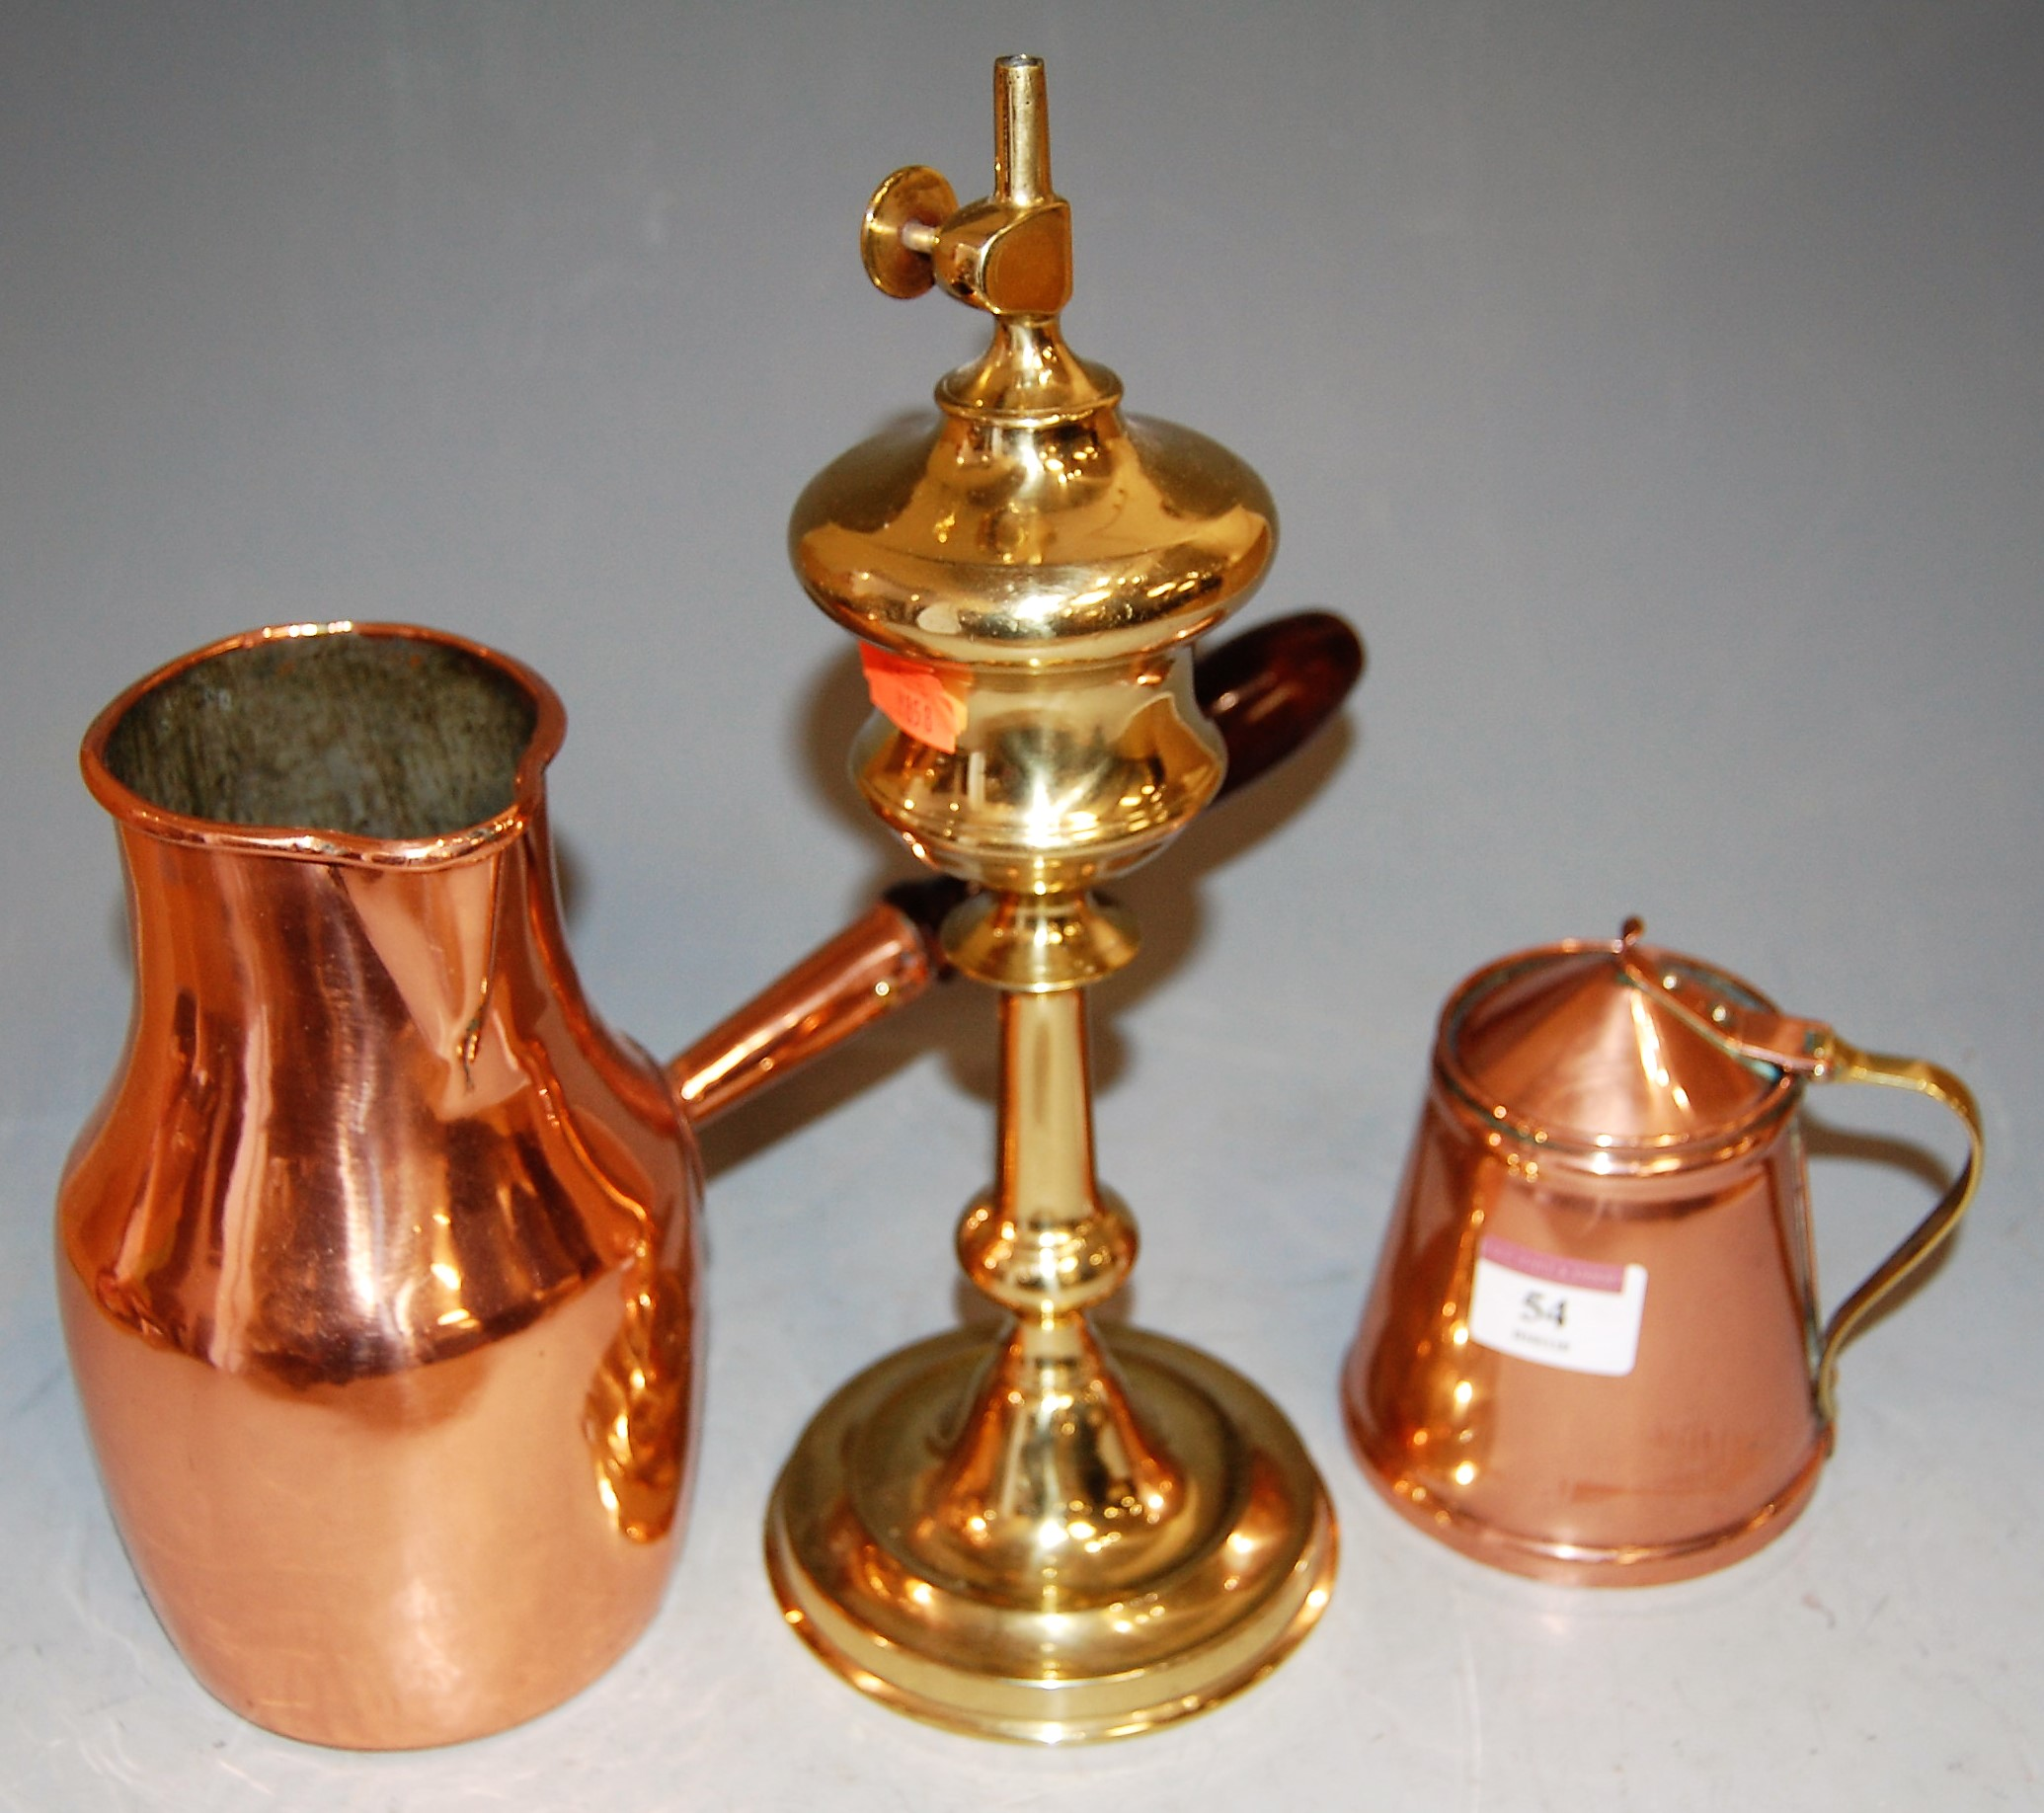 Lot 54 - An early 20th century copper mug, of tapered cylindrical form, having brass handle, stamped verso